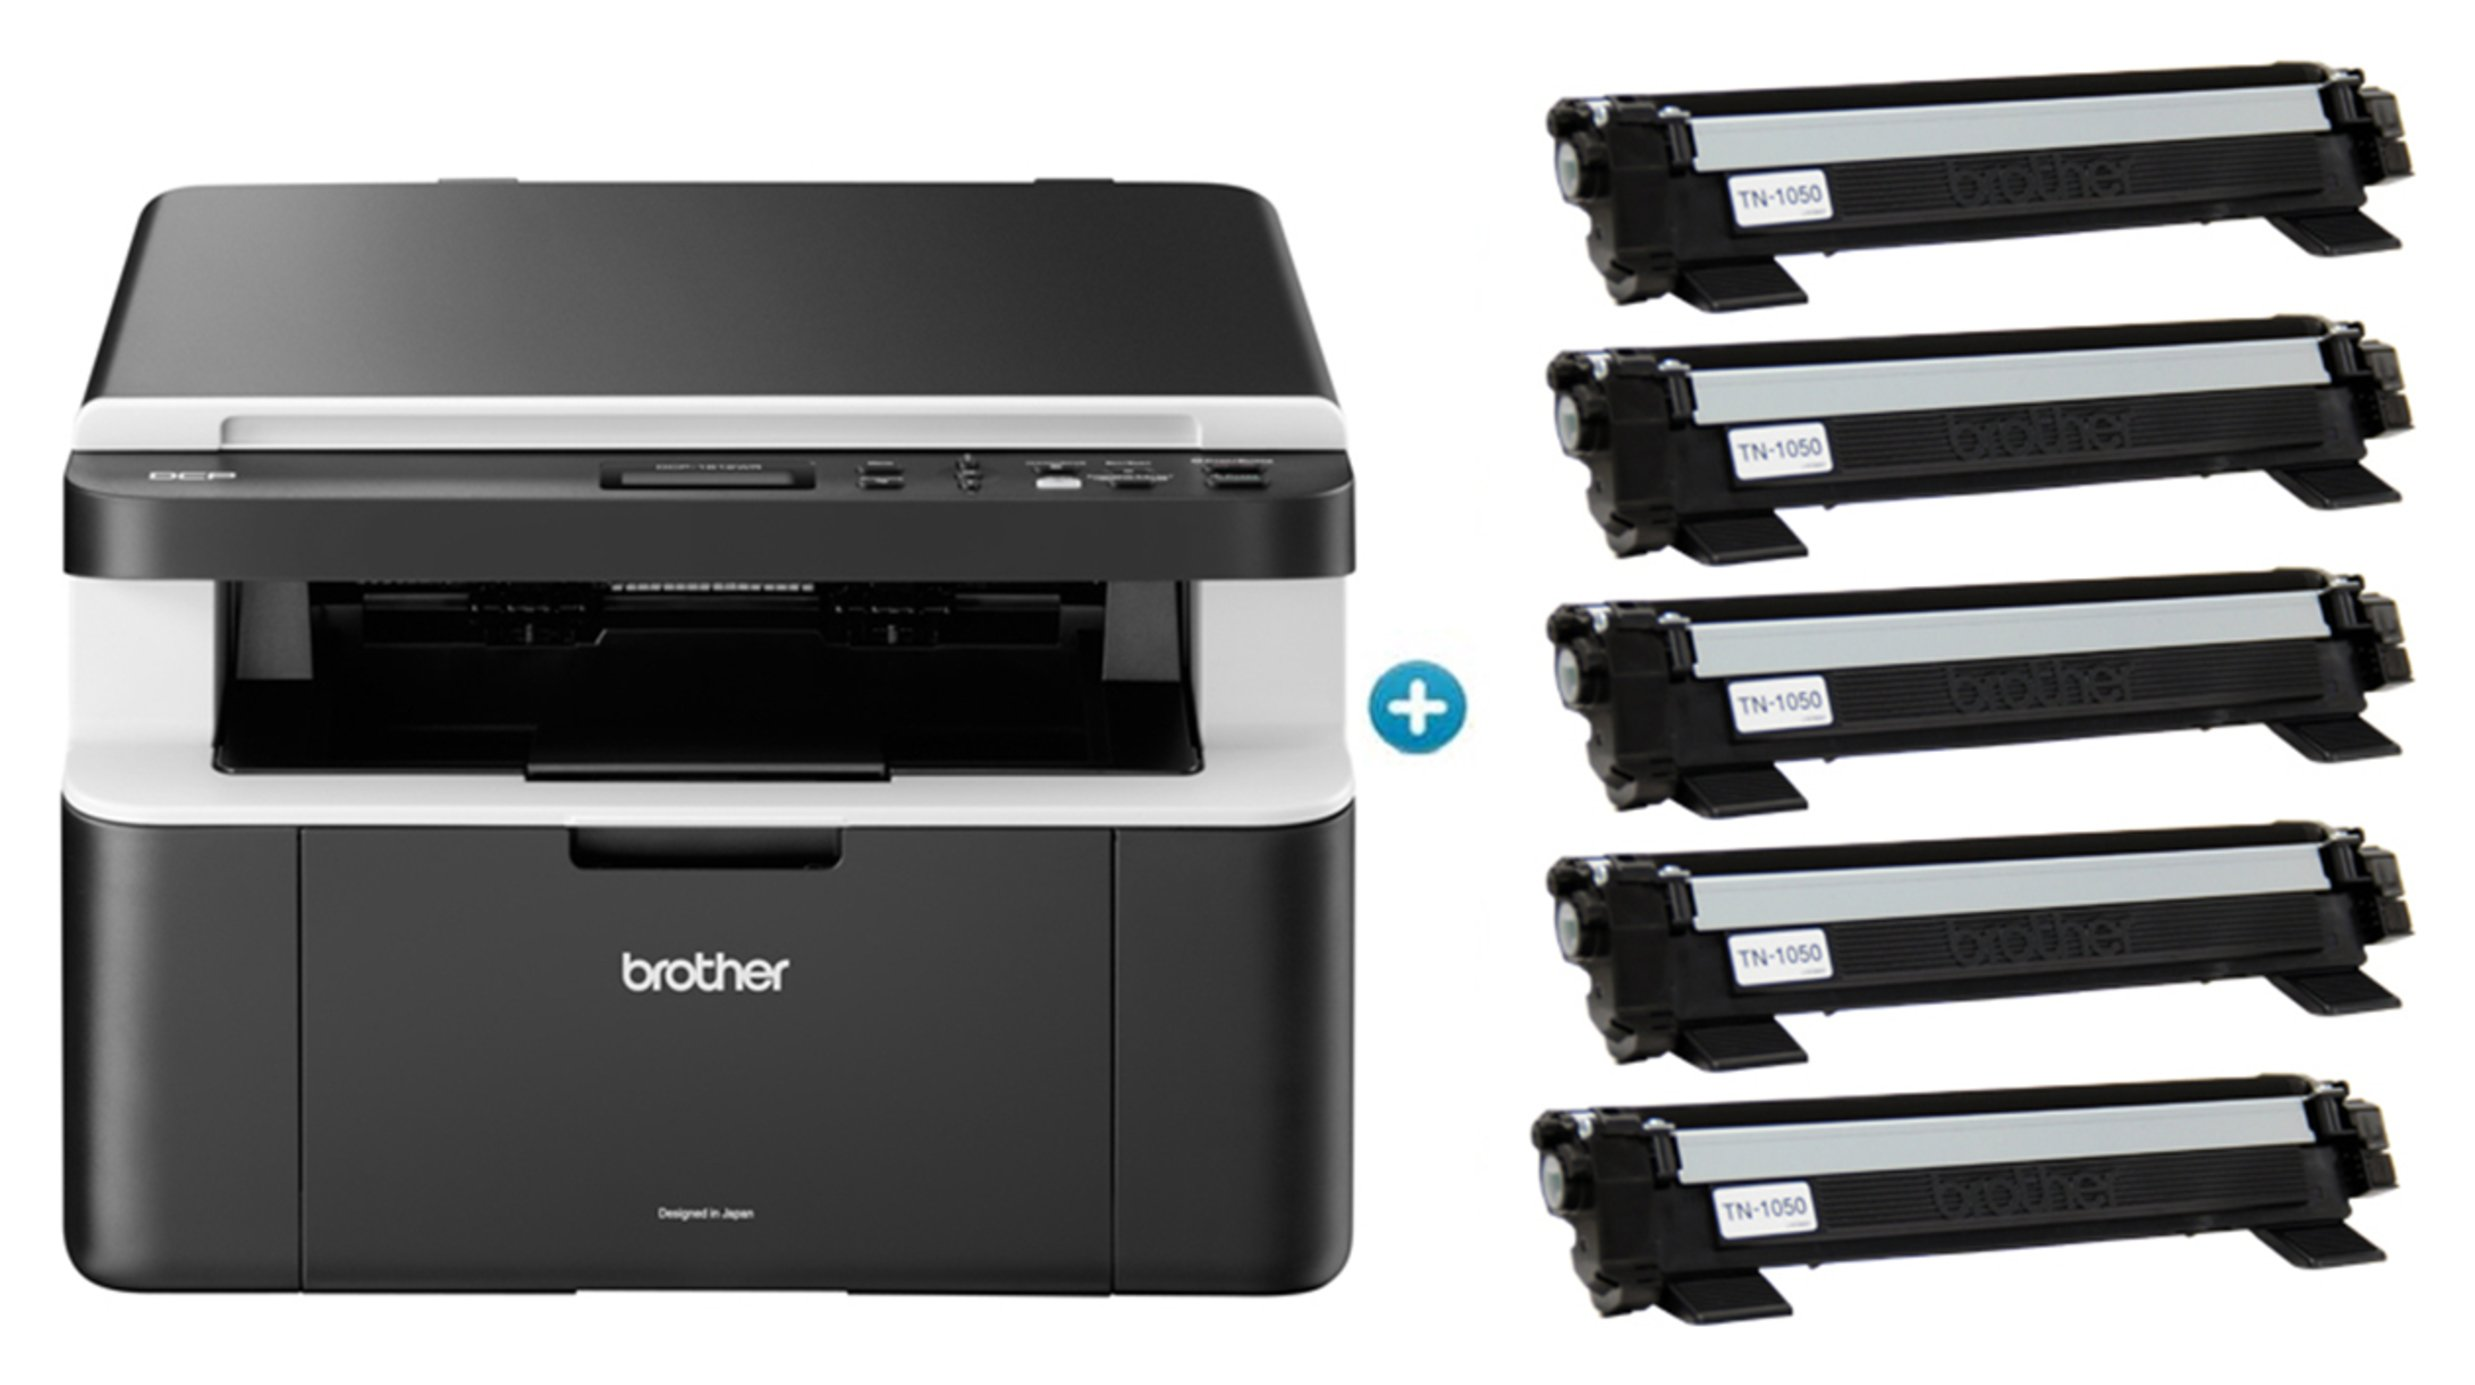 Image of Brother DCP-1612WVB Wireless All-in-one Mono Laser Printer.